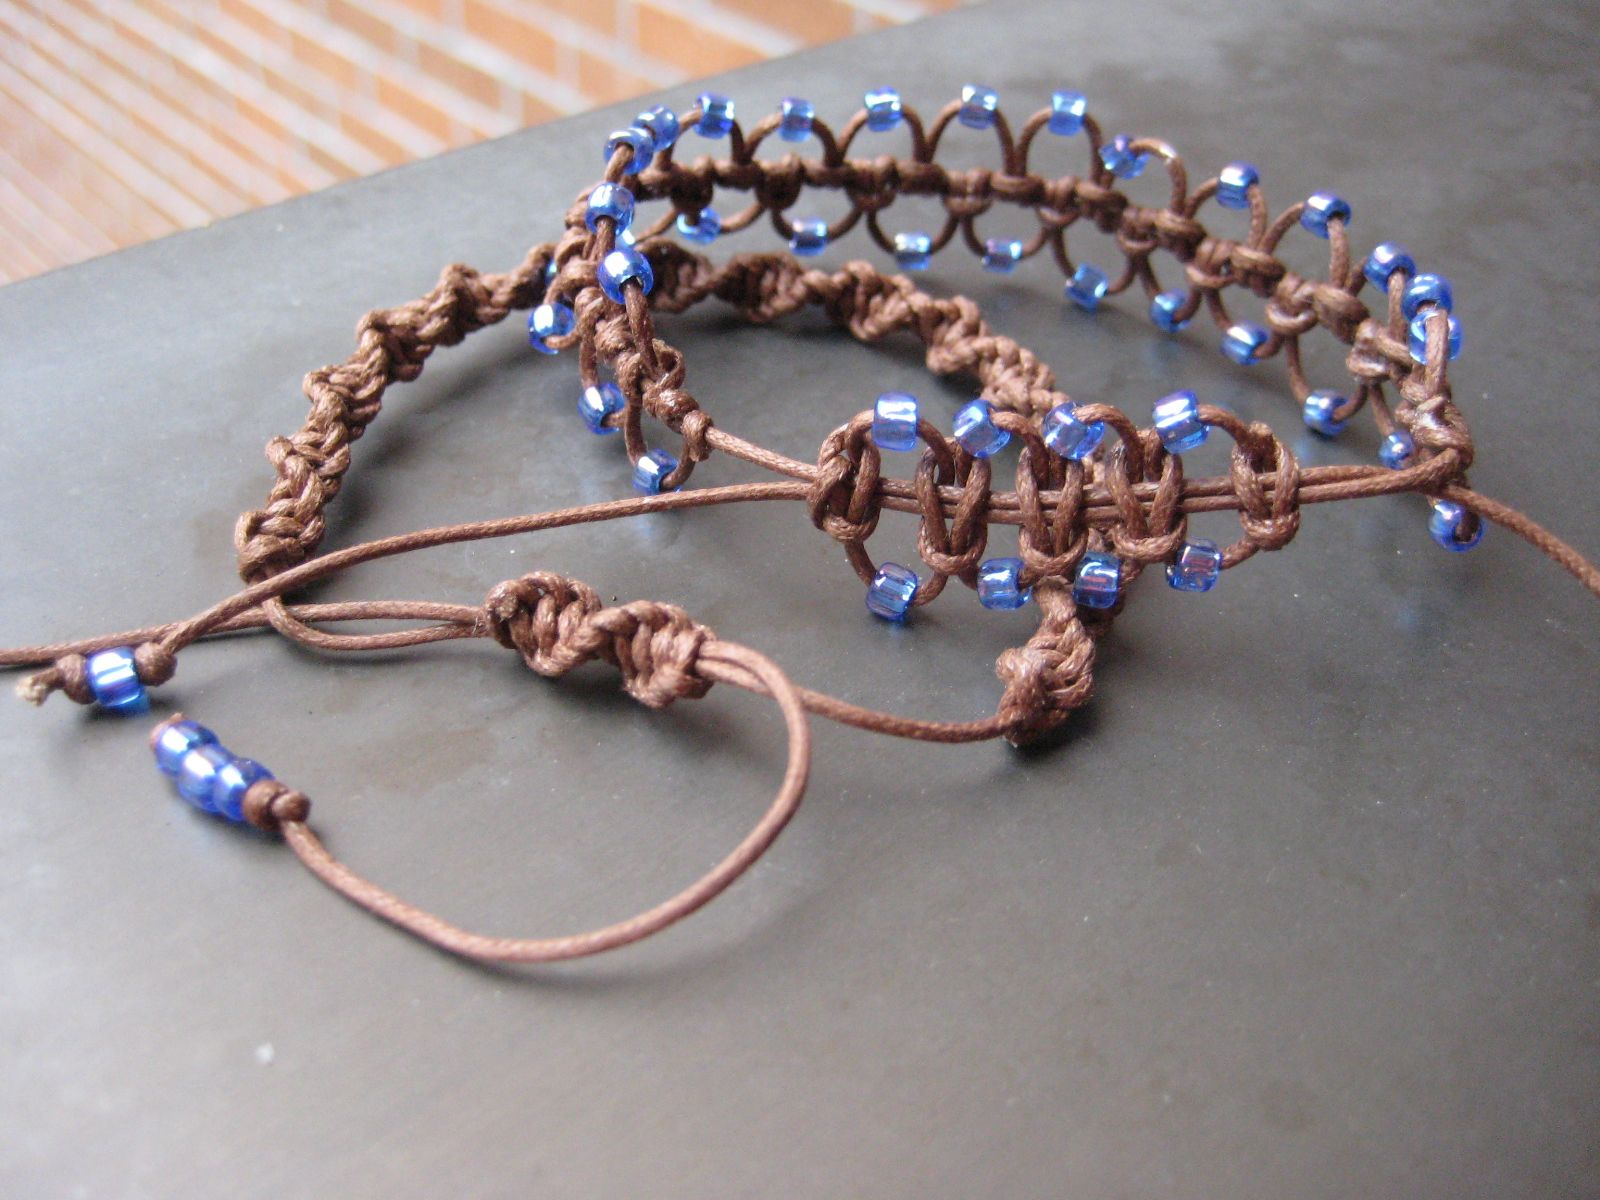 Stacked Brown Macramé Bracelets with Lavender-Blue Beads